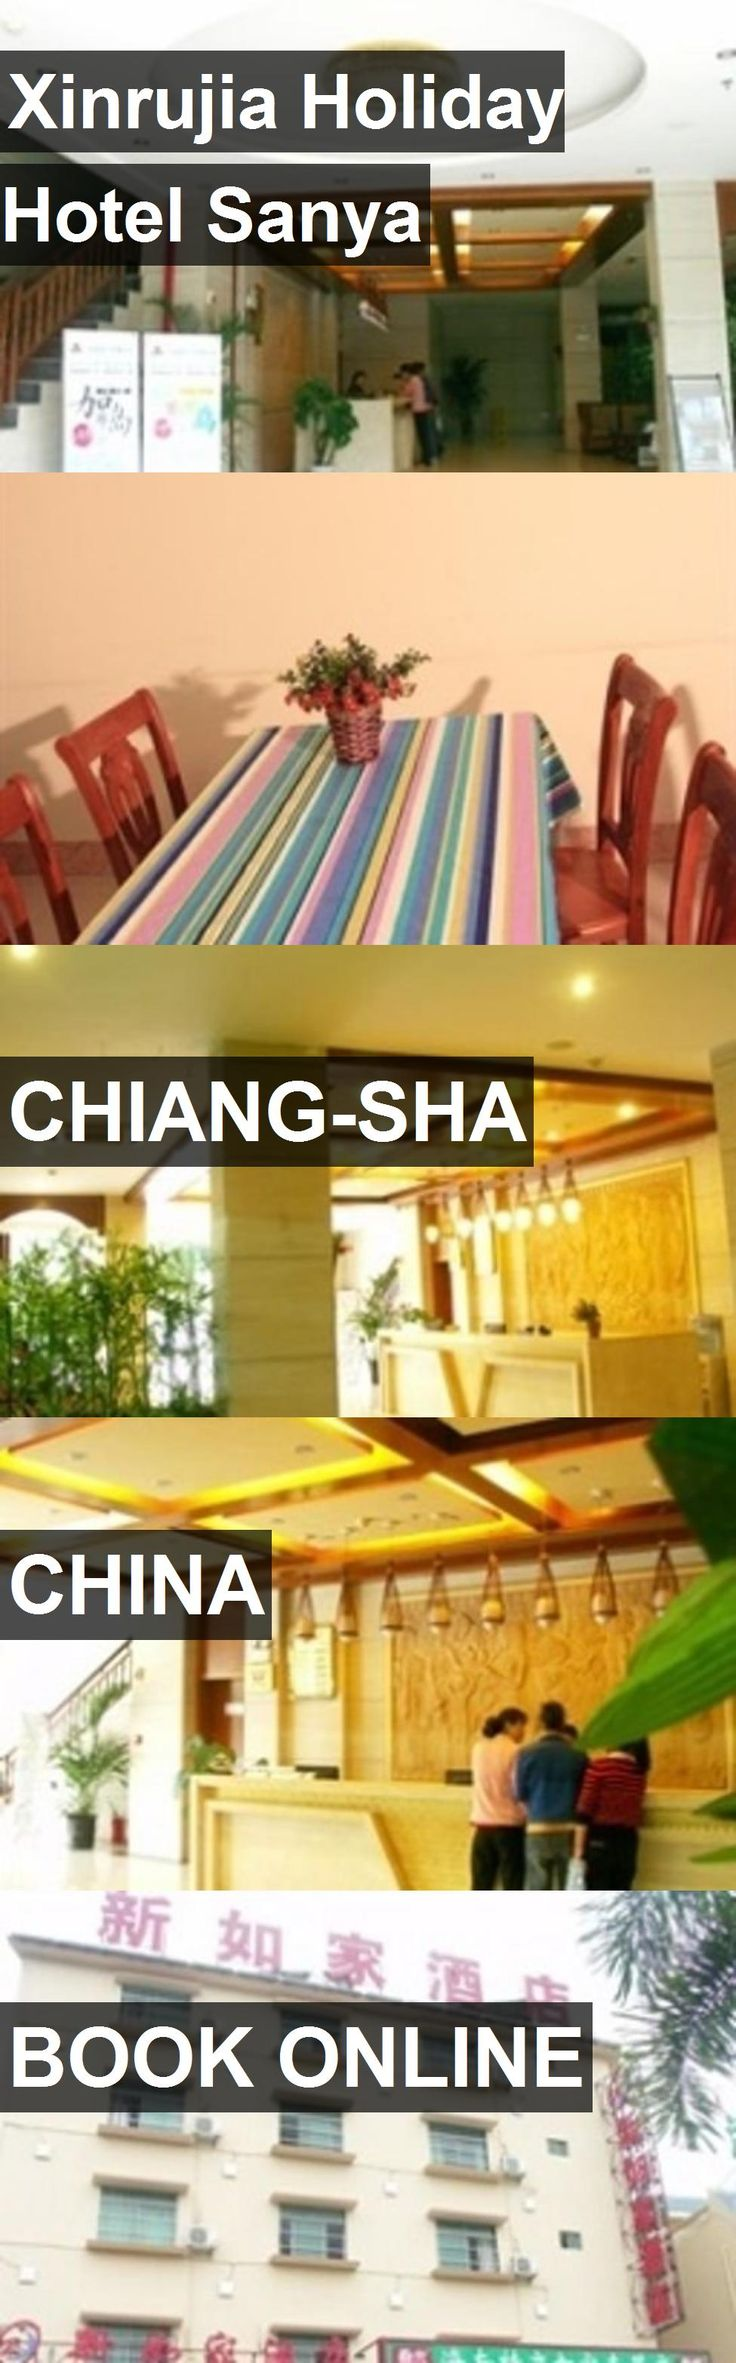 Hotel Xinrujia Holiday Hotel Sanya in Chiang-sha, China. For more information, photos, reviews and best prices please follow the link. #China #Chiang-sha #XinrujiaHolidayHotelSanya #hotel #travel #vacation